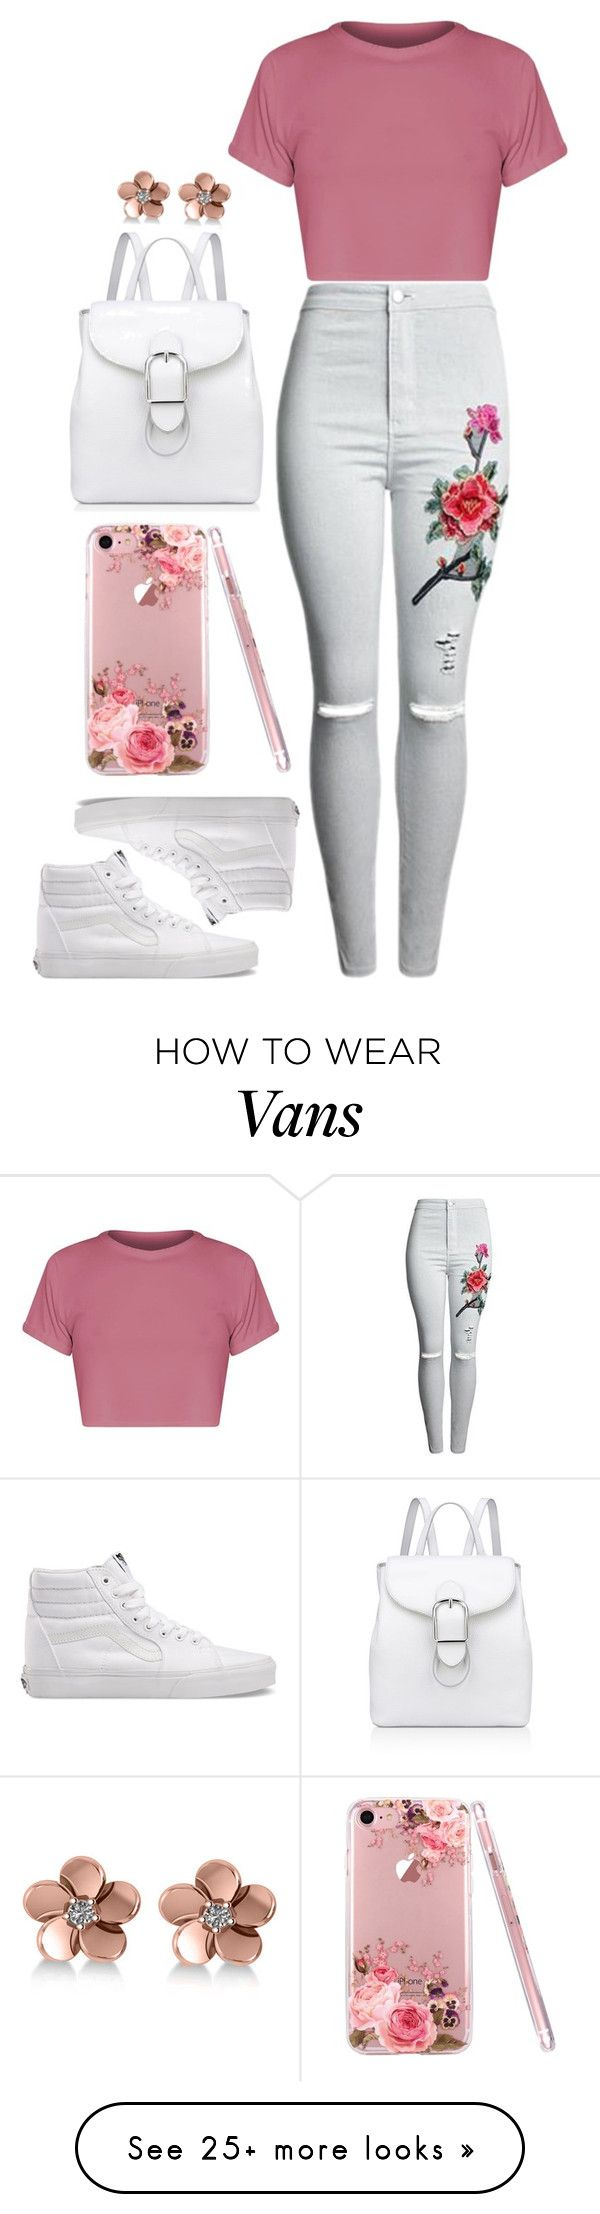 """Untitled #115"" by castor365 on Polyvore featuring BasicGrey, Vans, Anne Klein and Allurez"